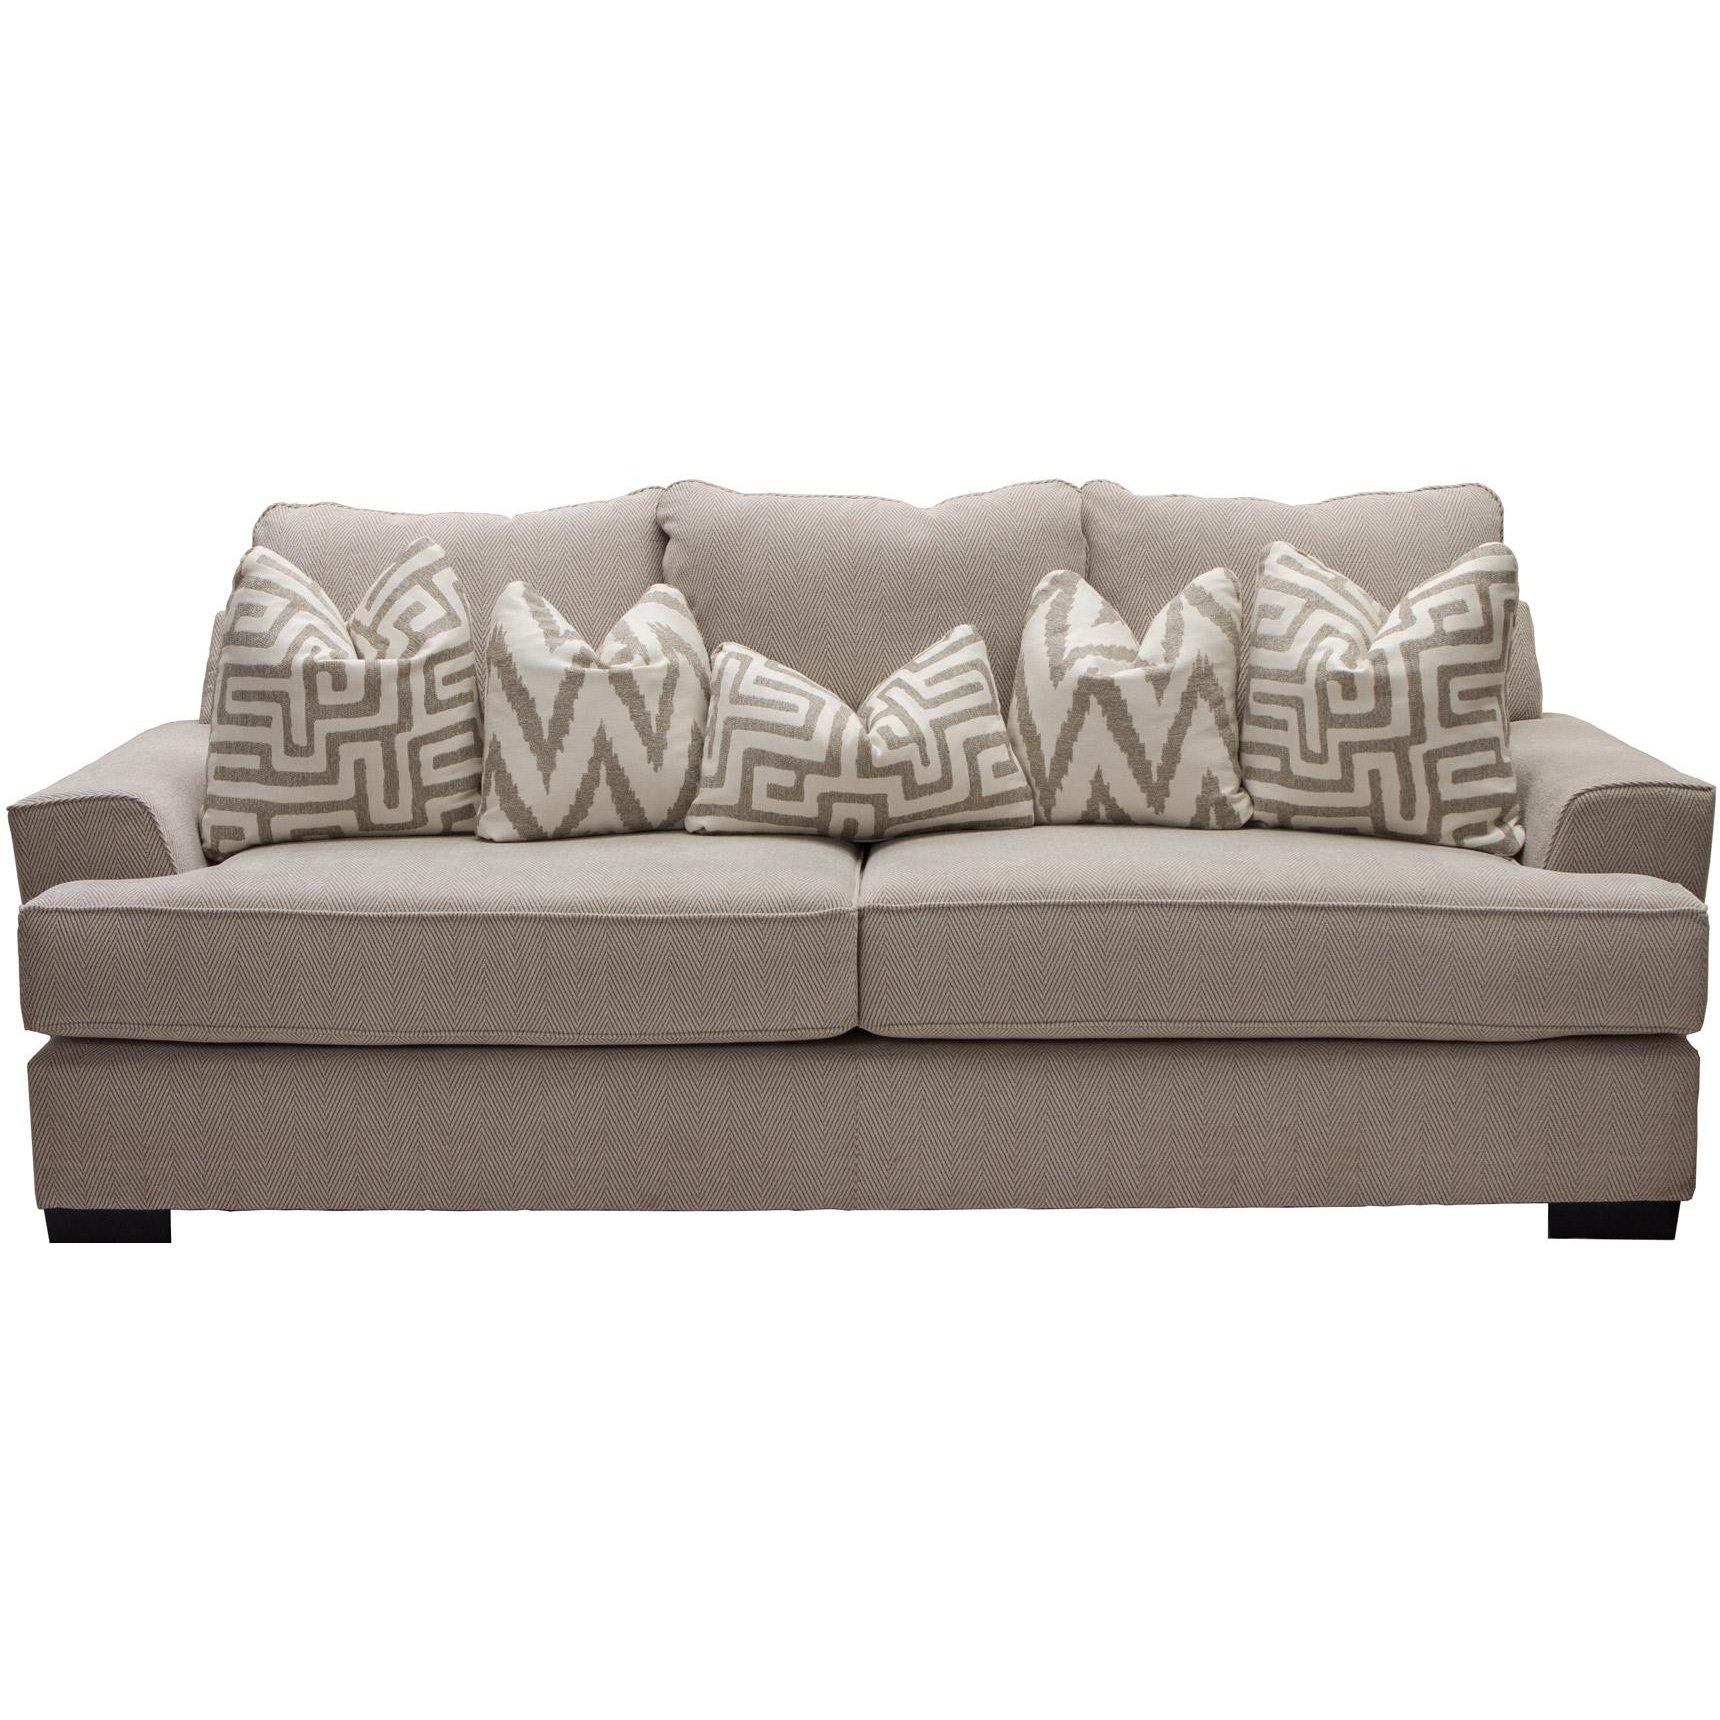 Awesome Stunning Casual Oatmeal Sofa Renegade With Sofa Beige With Soffa Grn